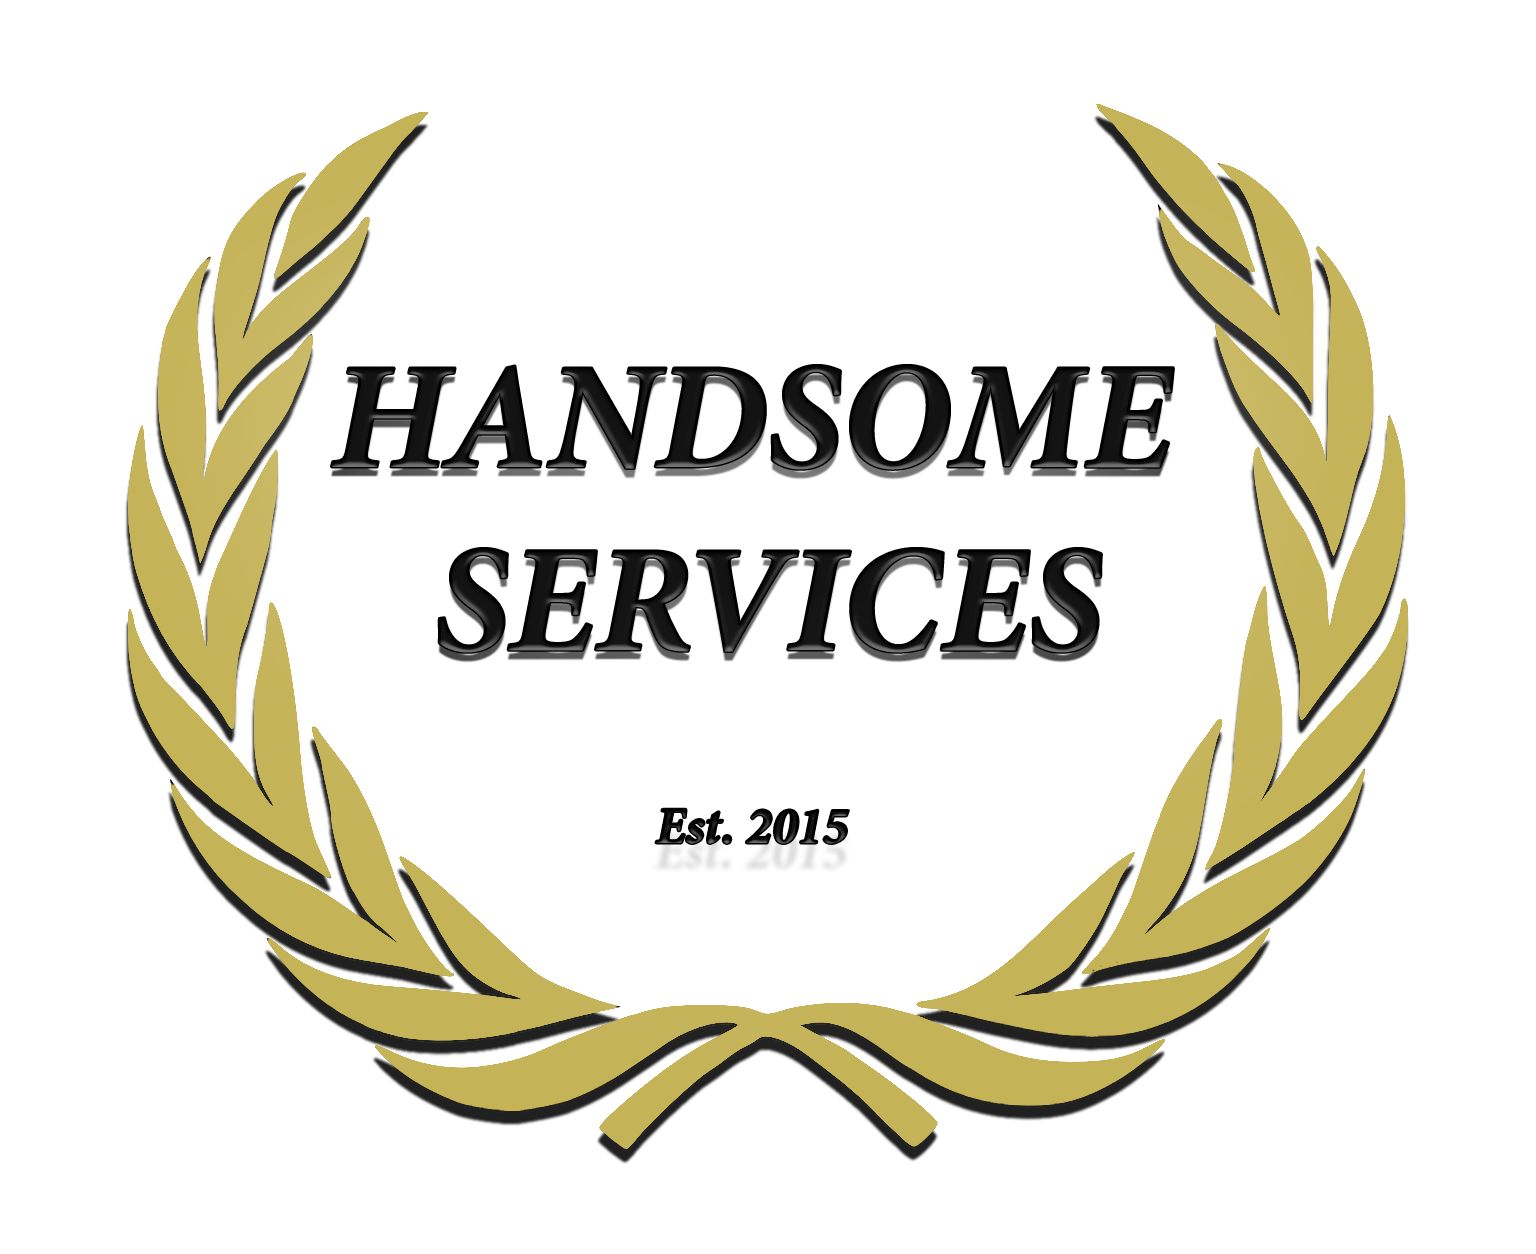 Handsome Services Marketing